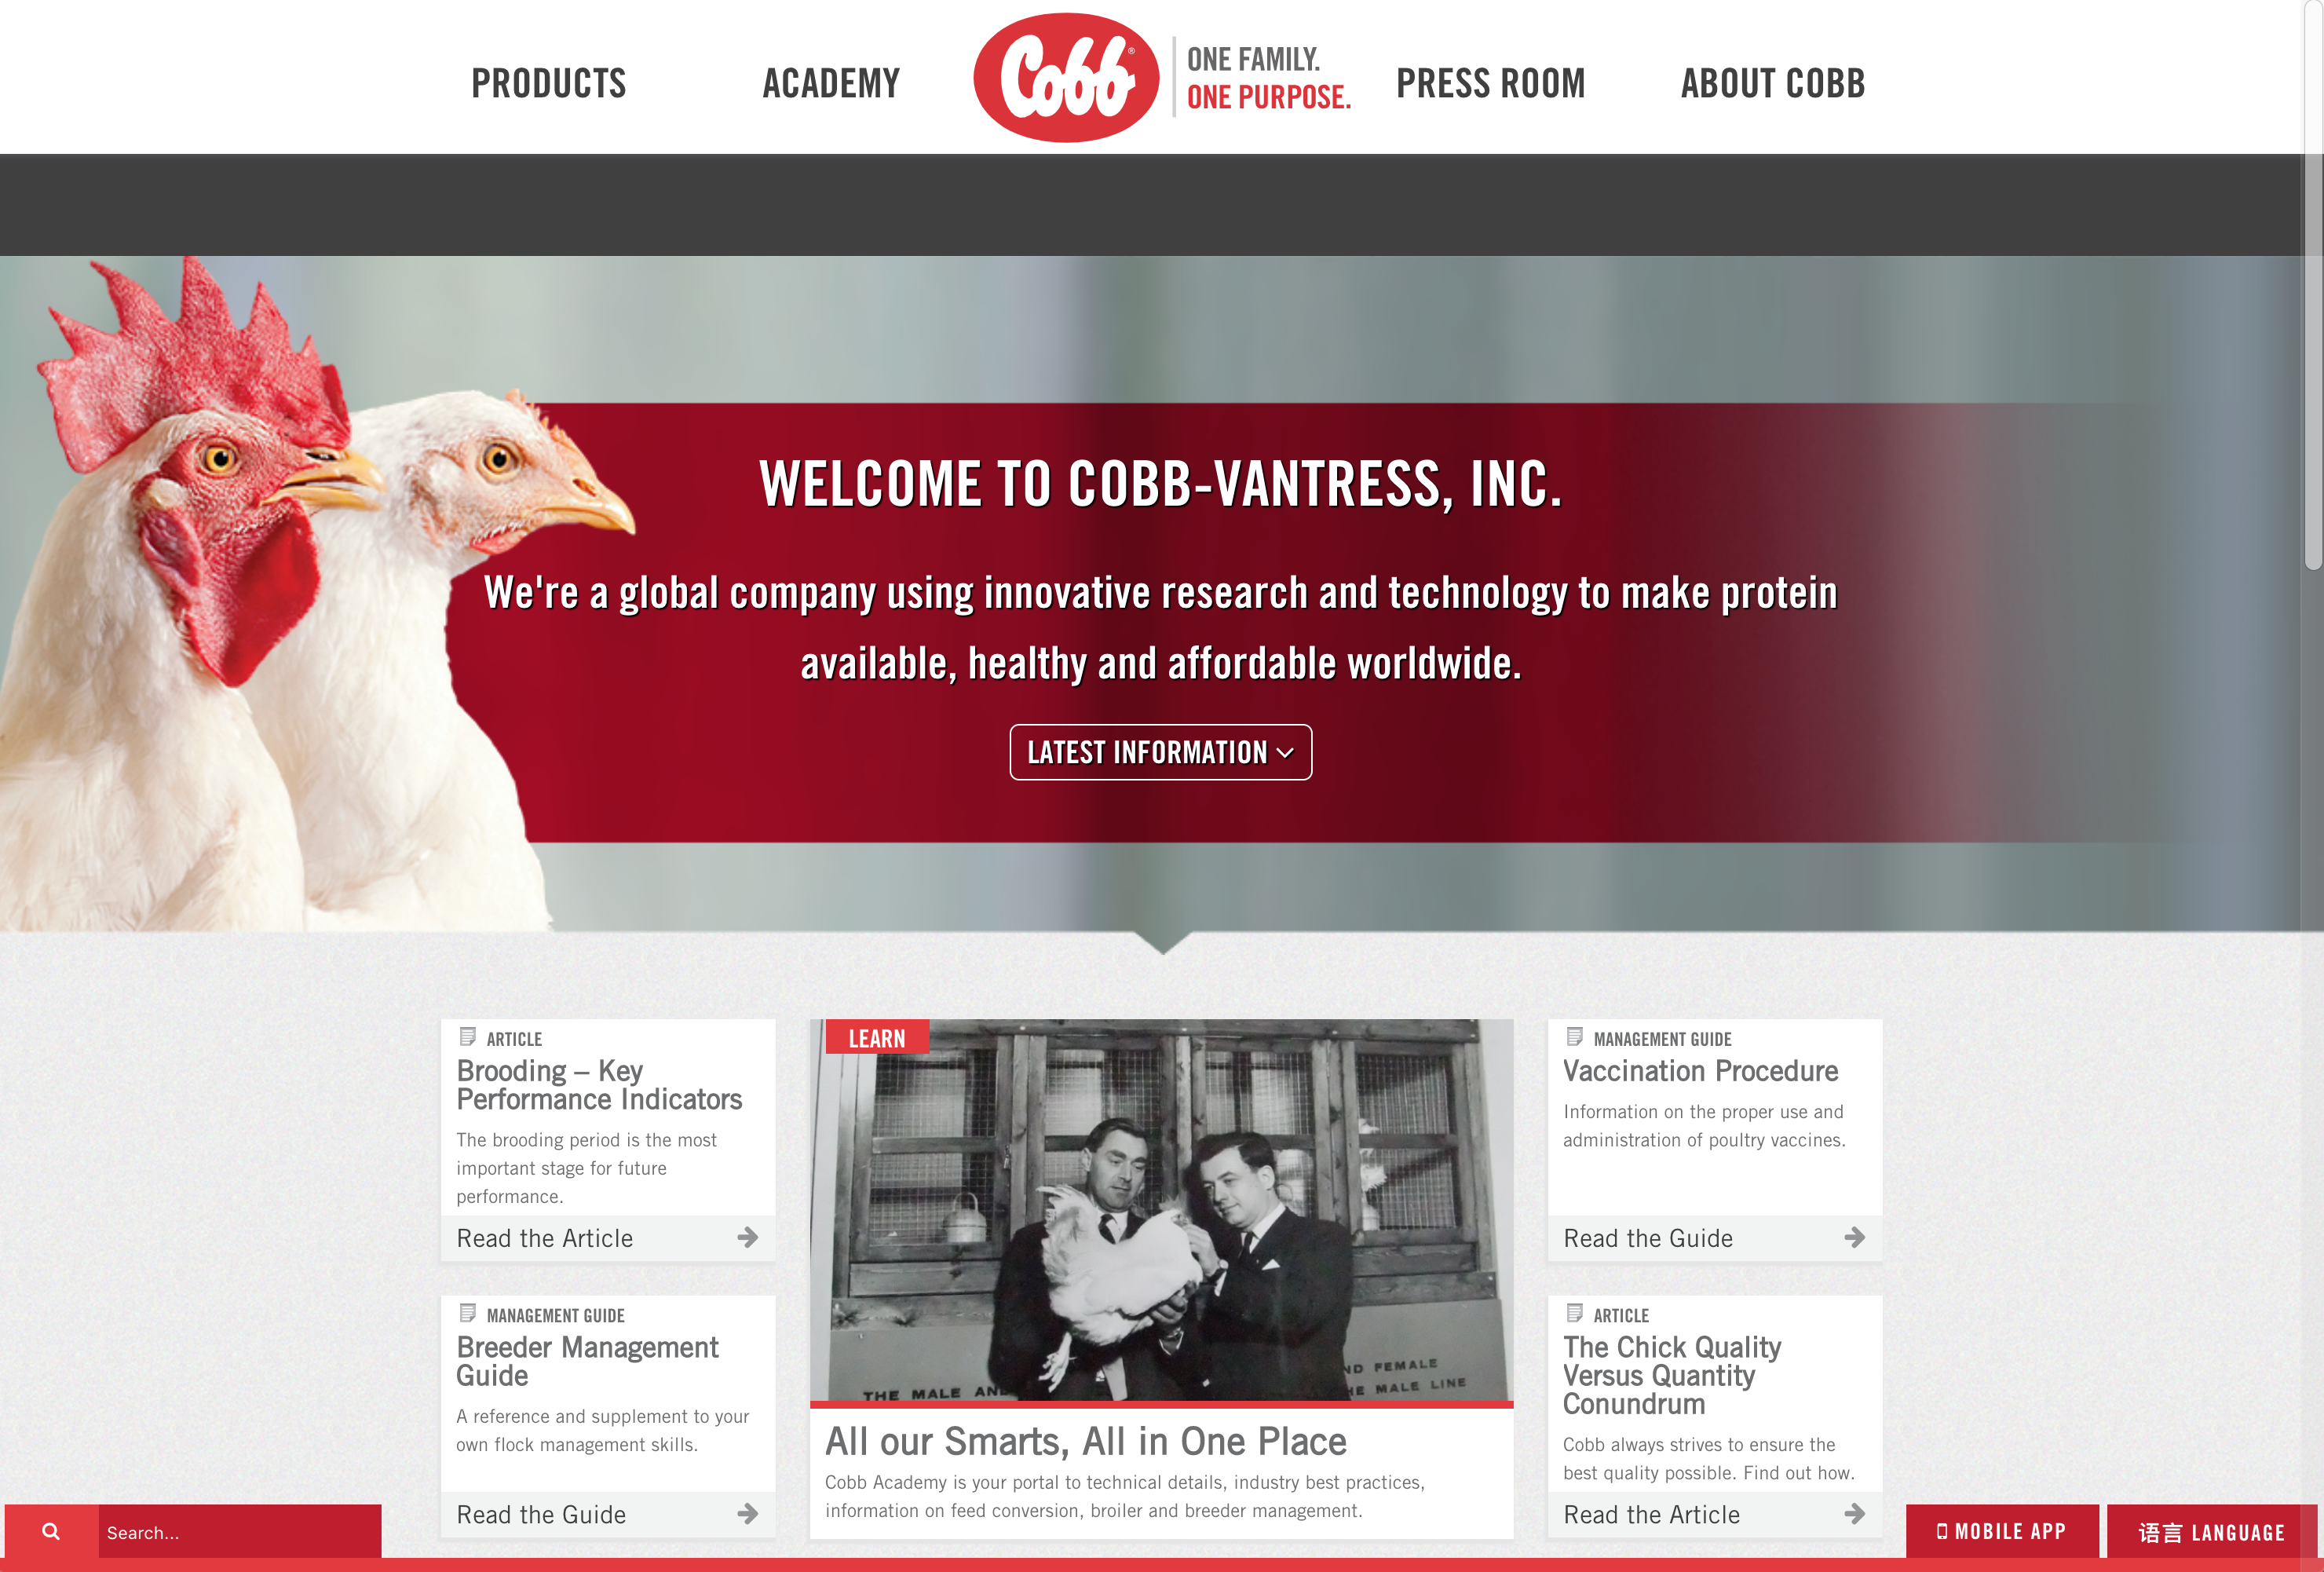 Cobb's Previous Website